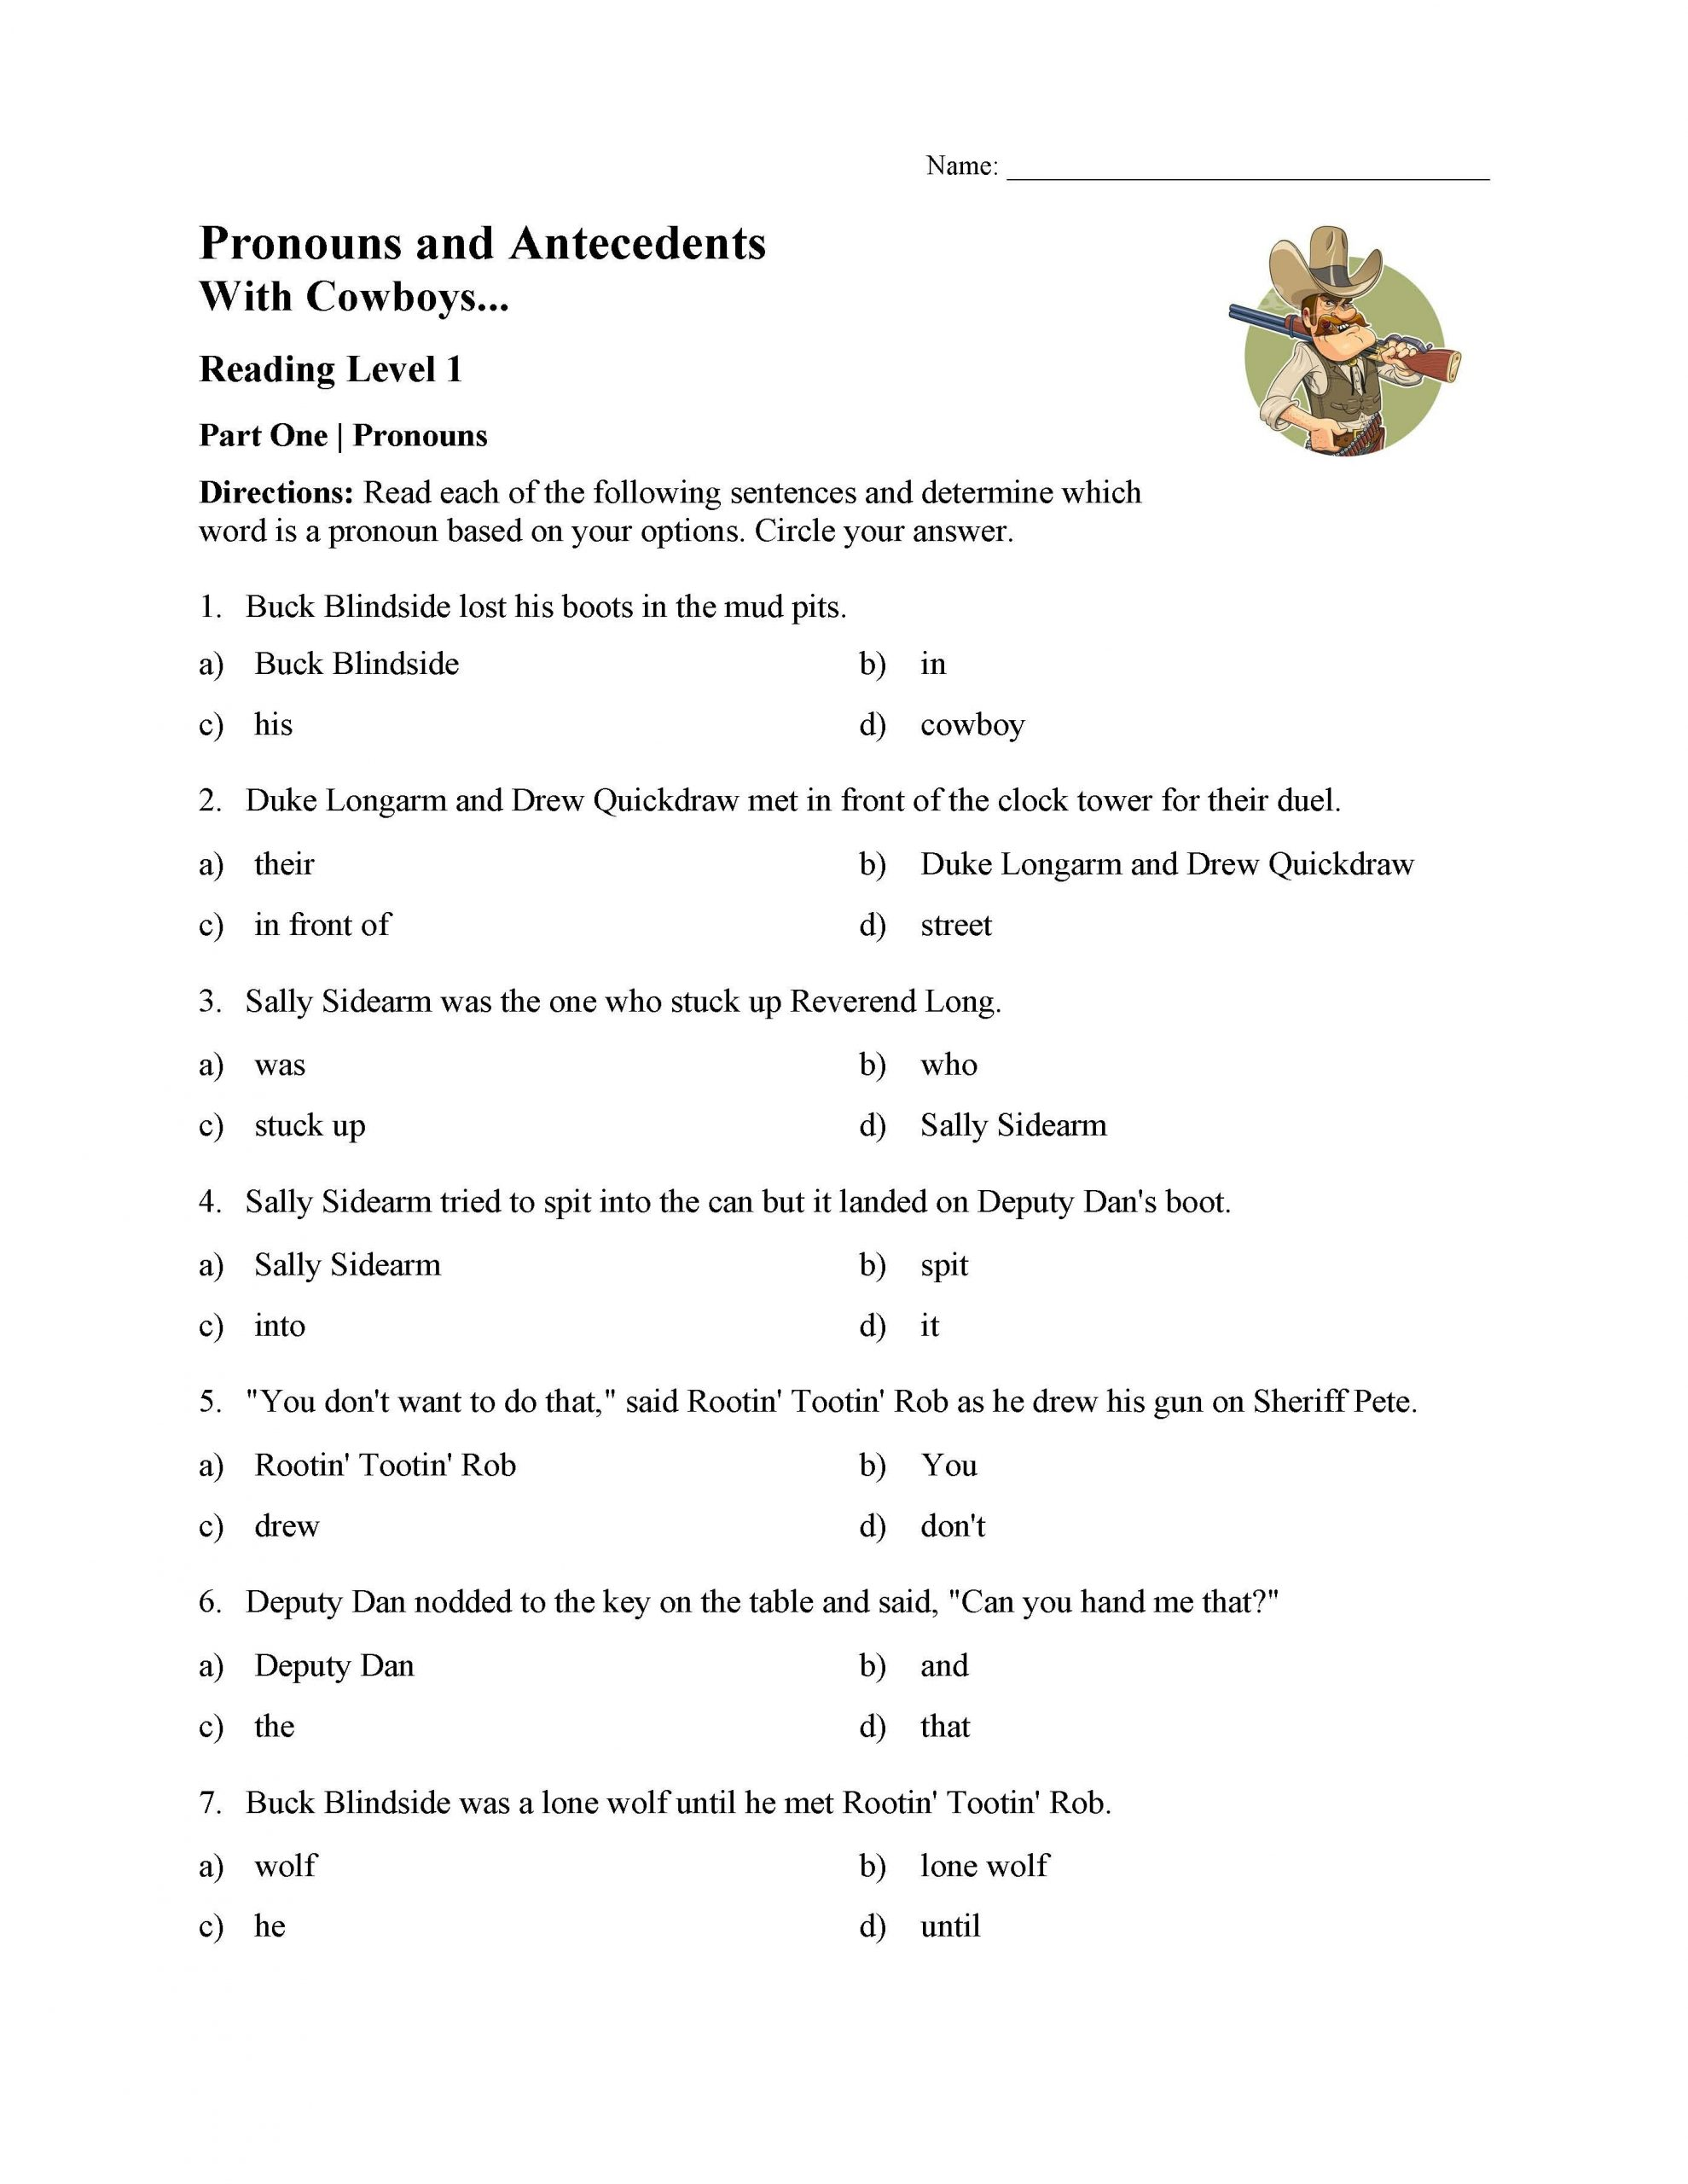 Pronouns Worksheets 5th Grade Pronoun and Antecedent Test with Cowboys